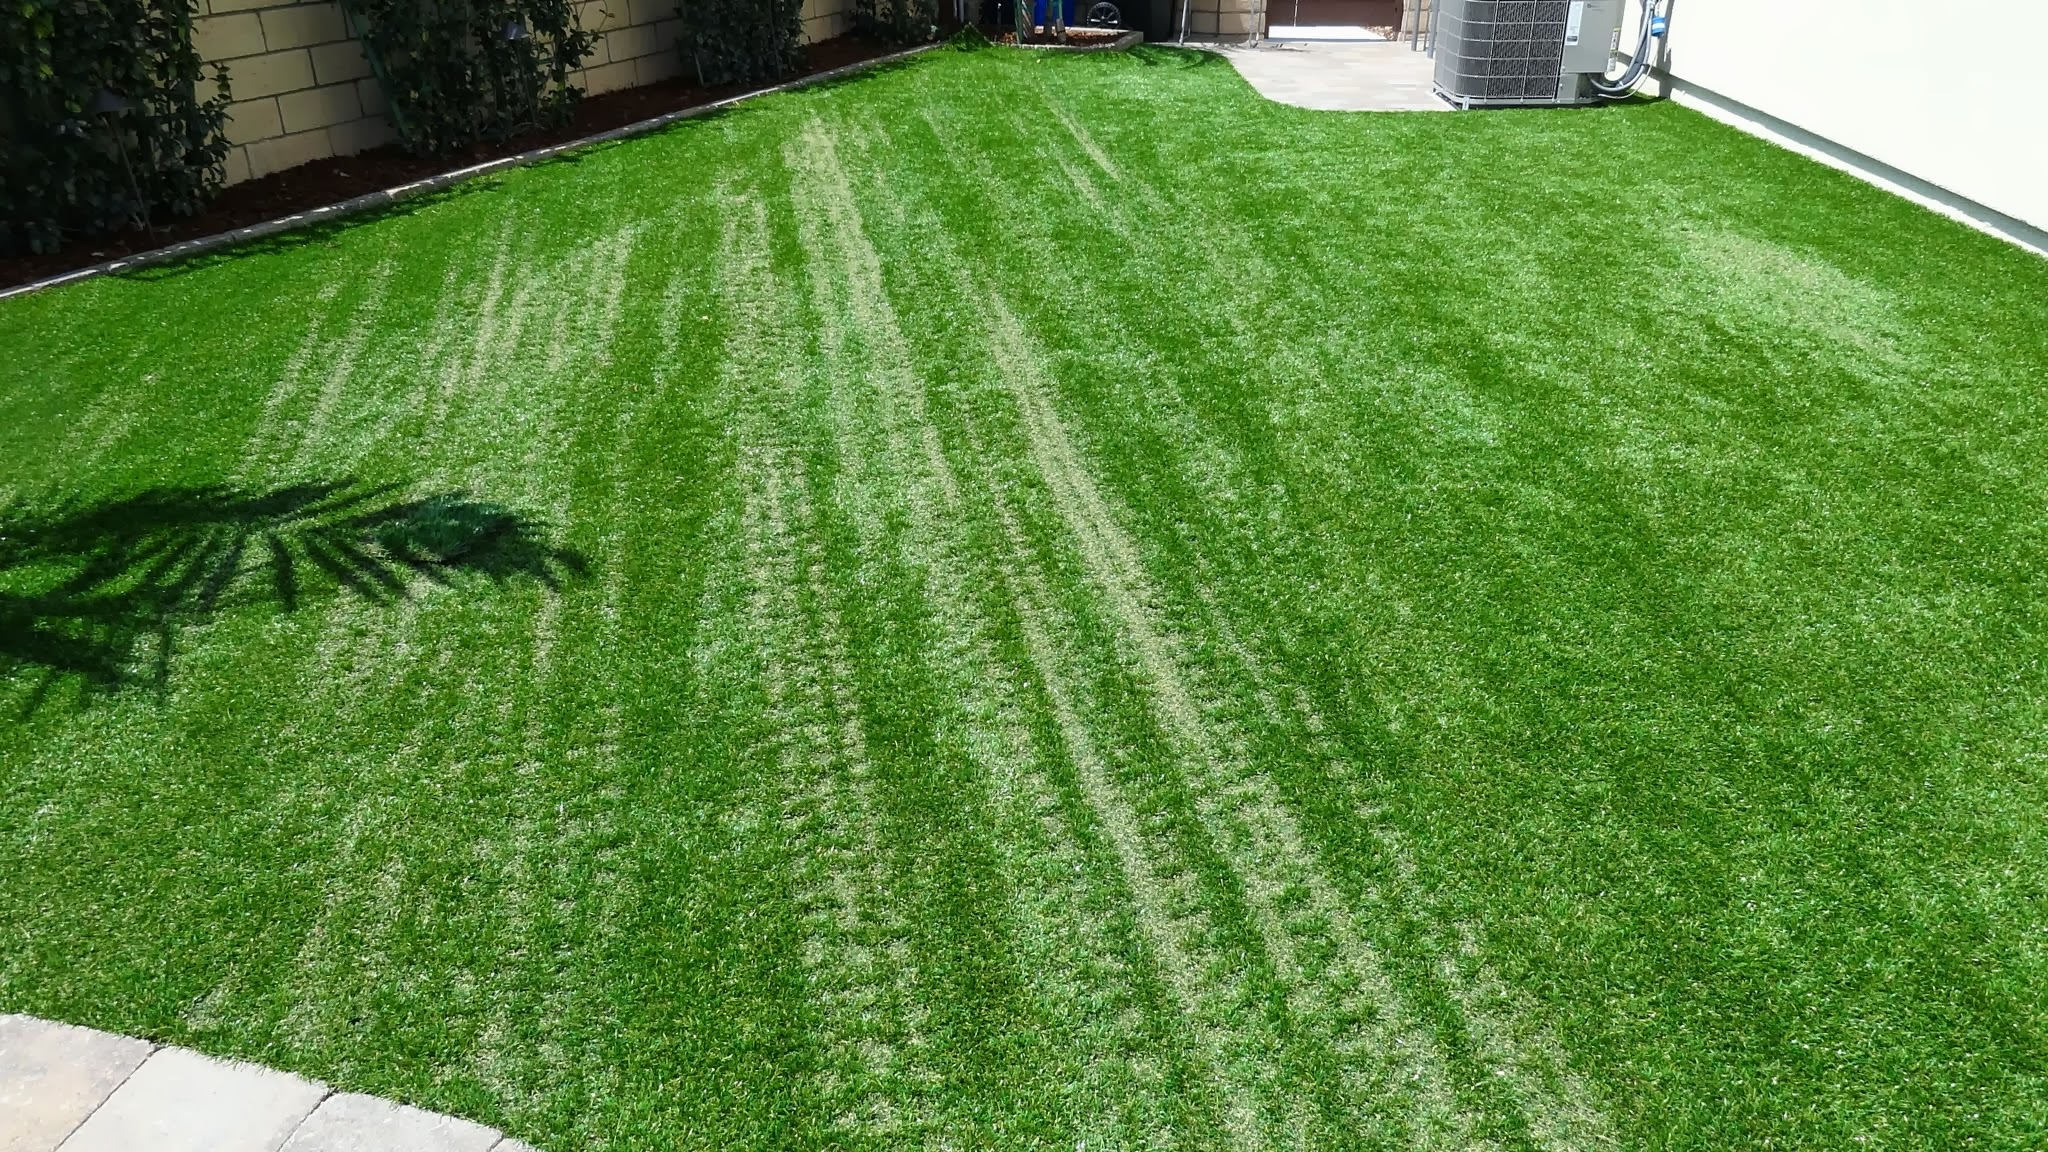 Melting Synthetic Turf